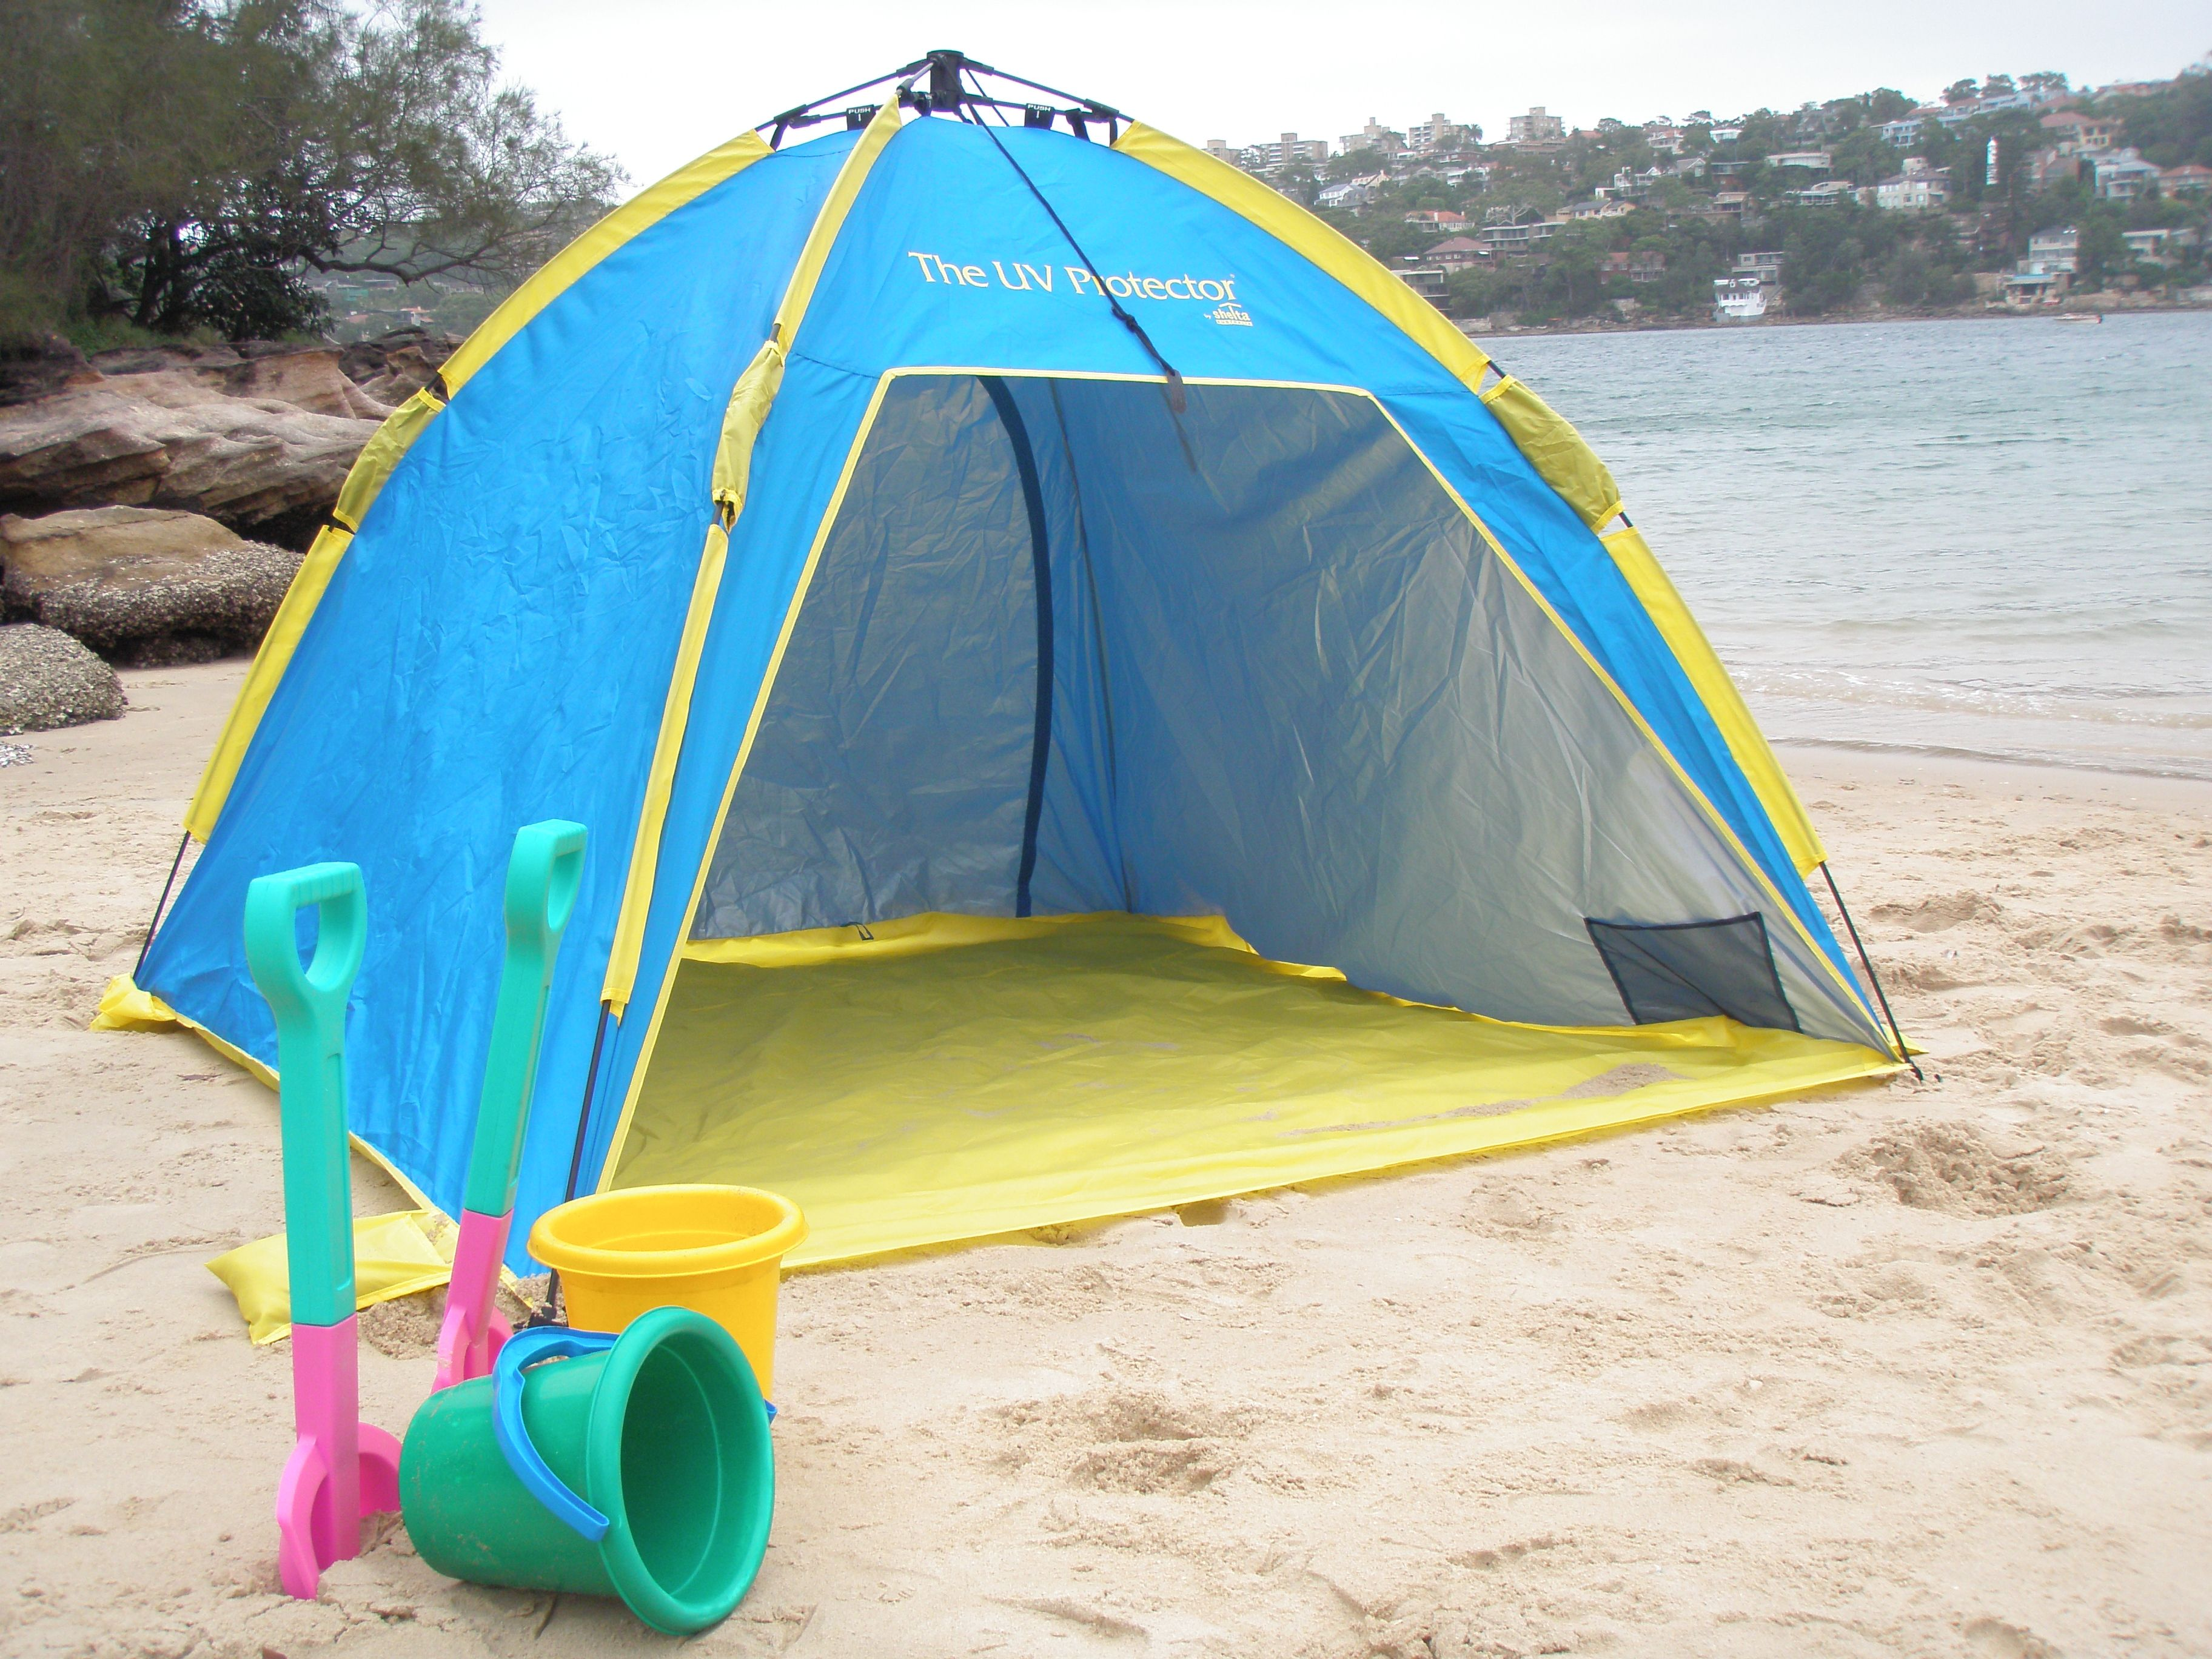 Sunproof UV beach tent by Shelta Australia. Distributed in the UK and Europe by Sunproof & Sunproof UV beach tent by Shelta Australia. Distributed in the UK ...